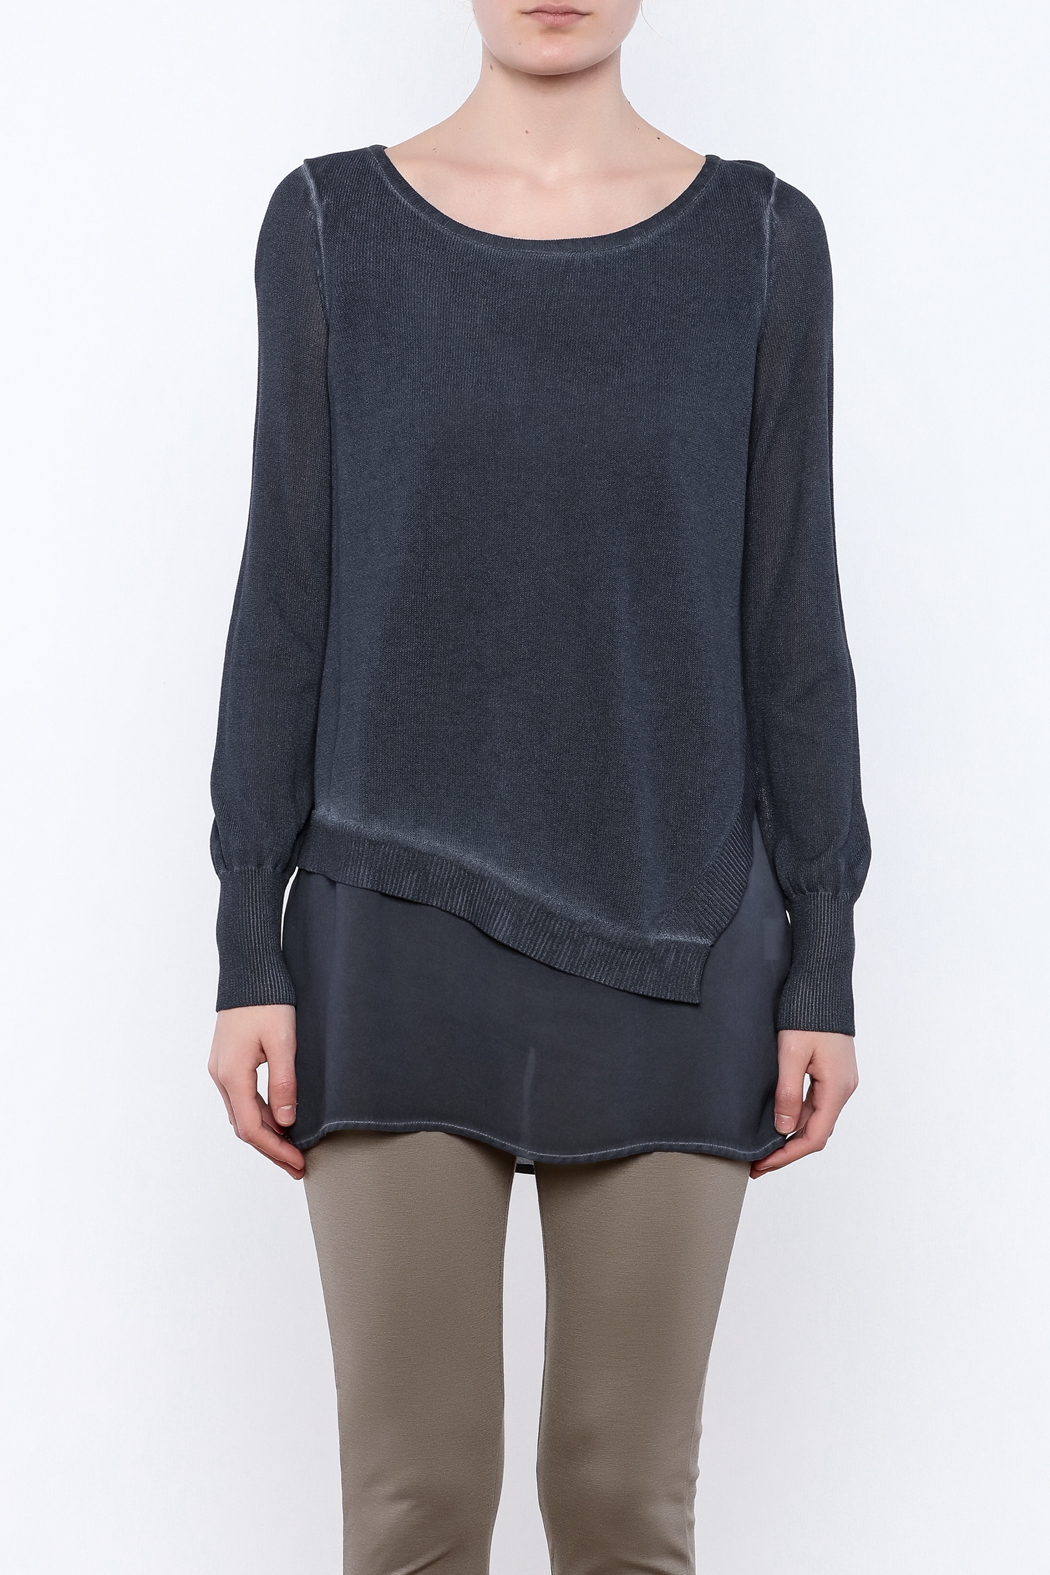 Yest Asymmetrical Knit Tunic - Side Cropped Image